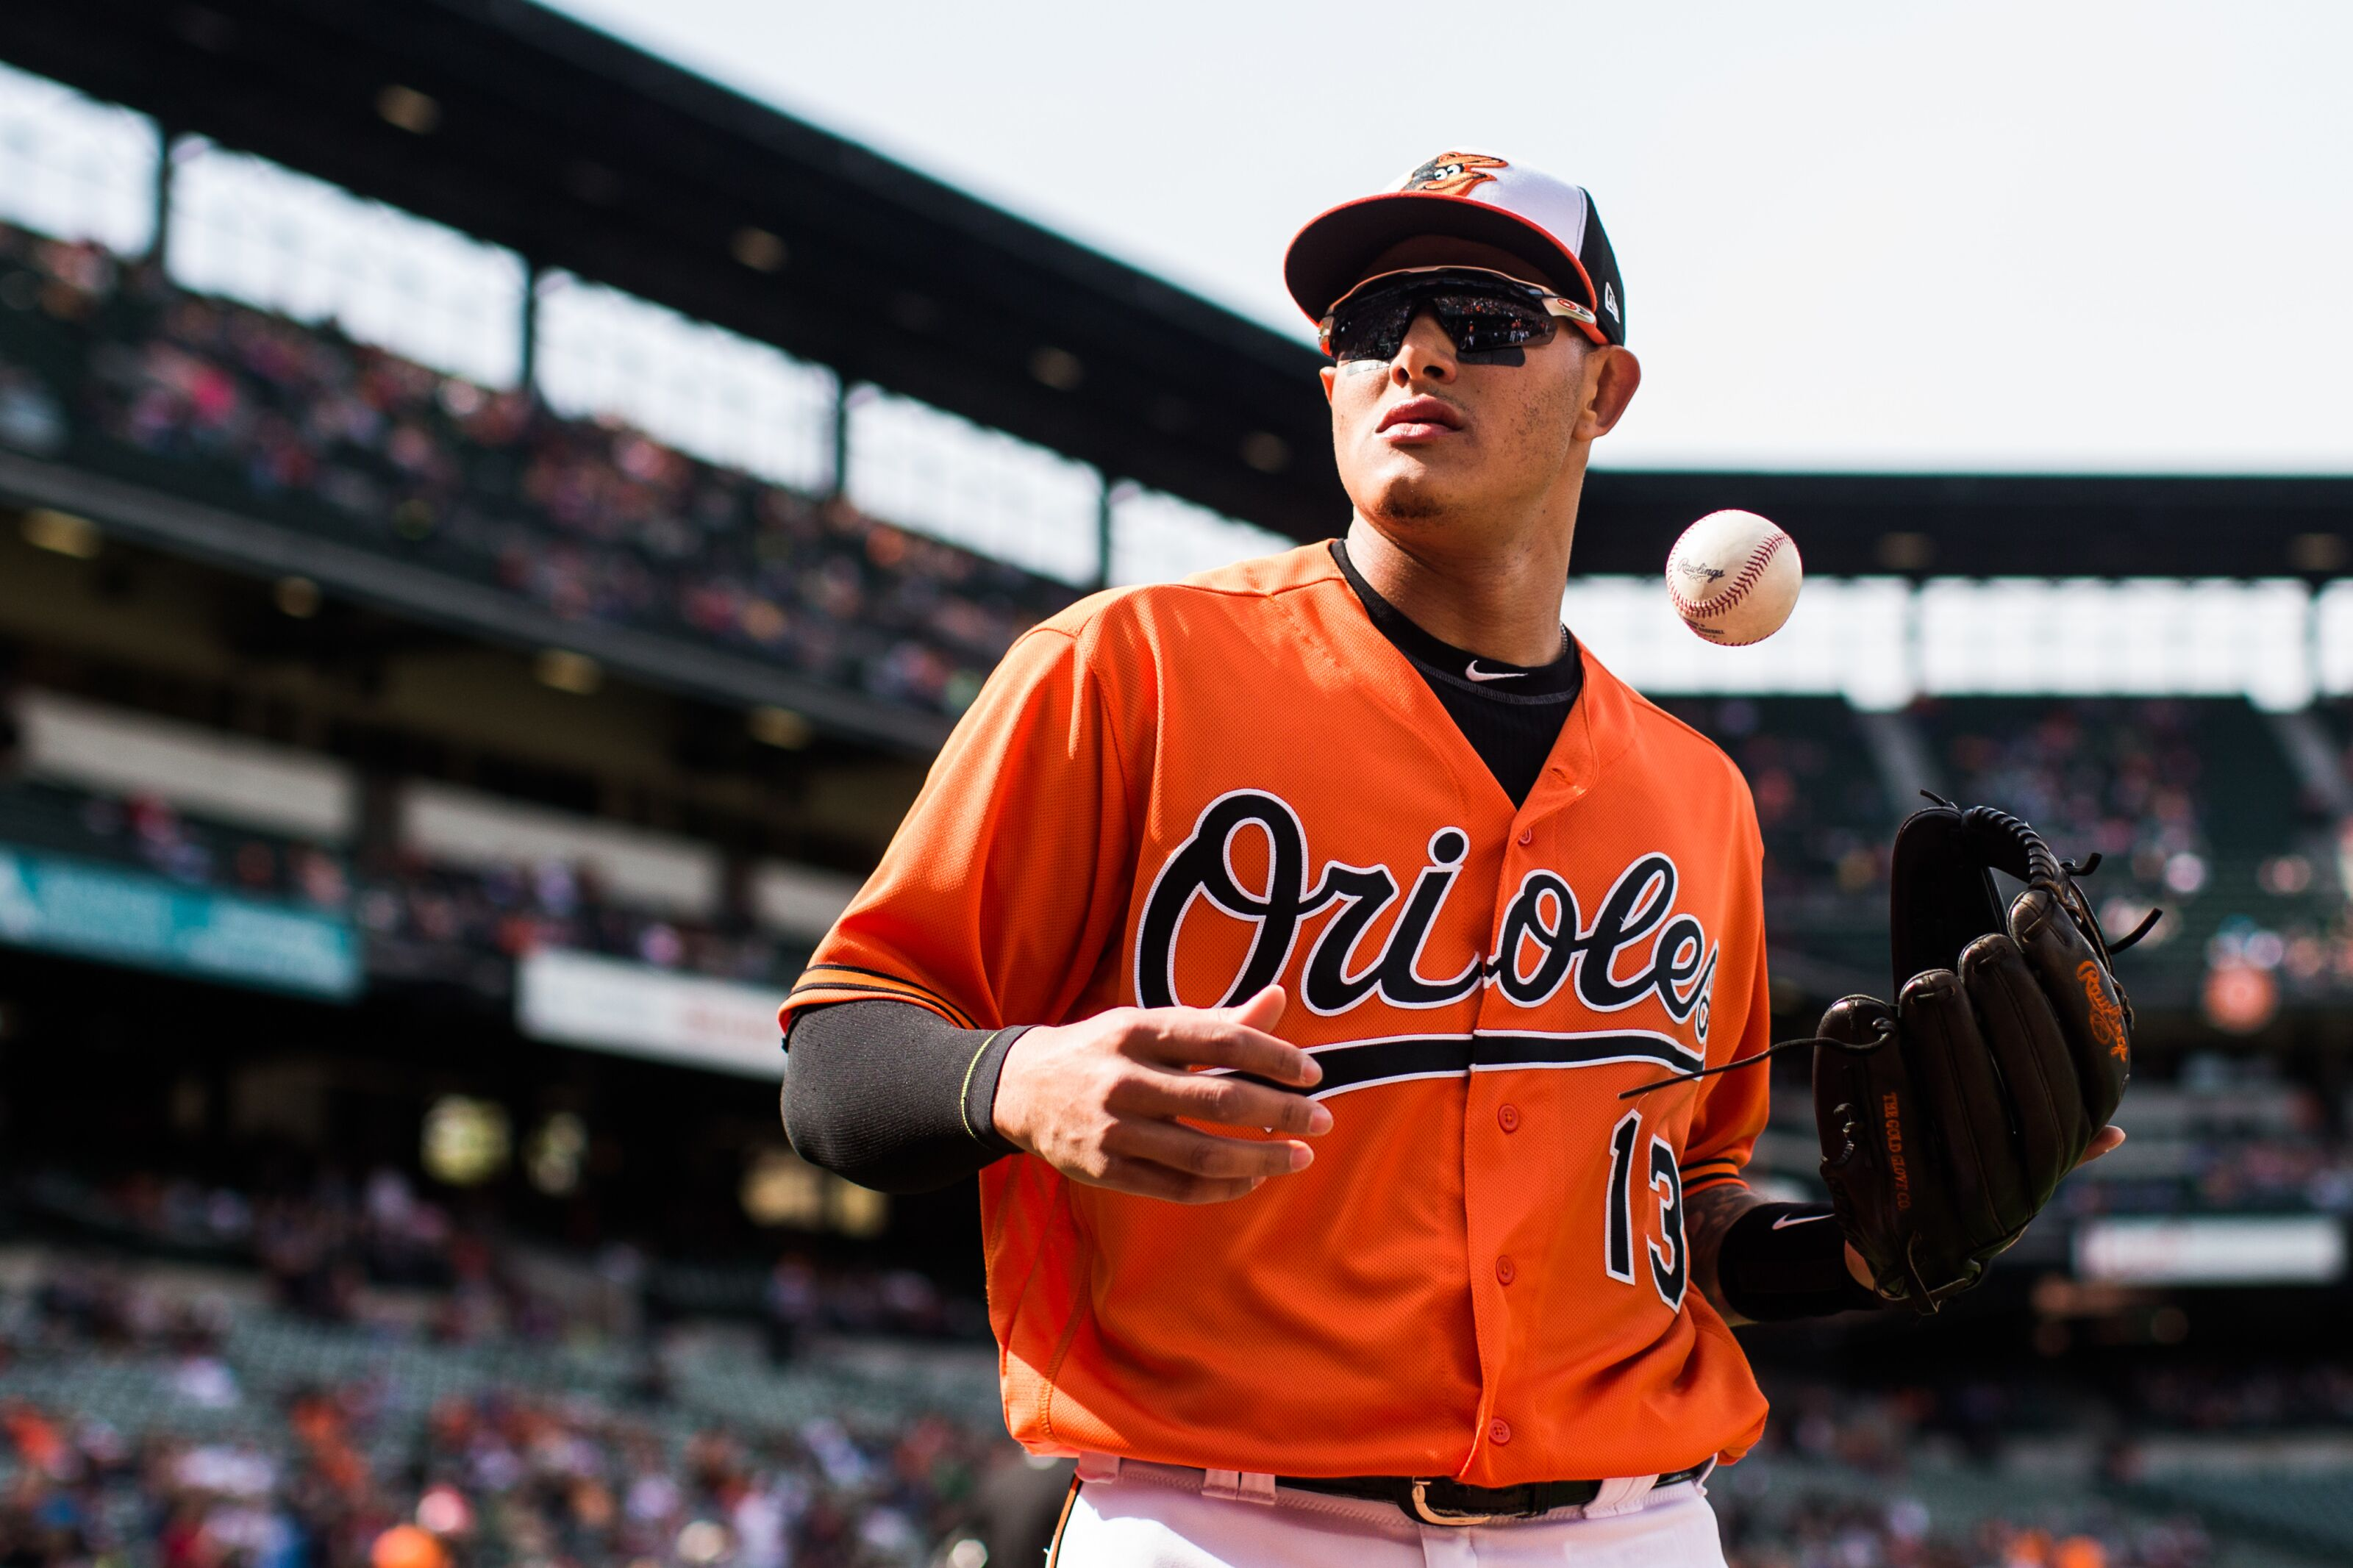 Here's why the Manny Machado signing is good for baseball